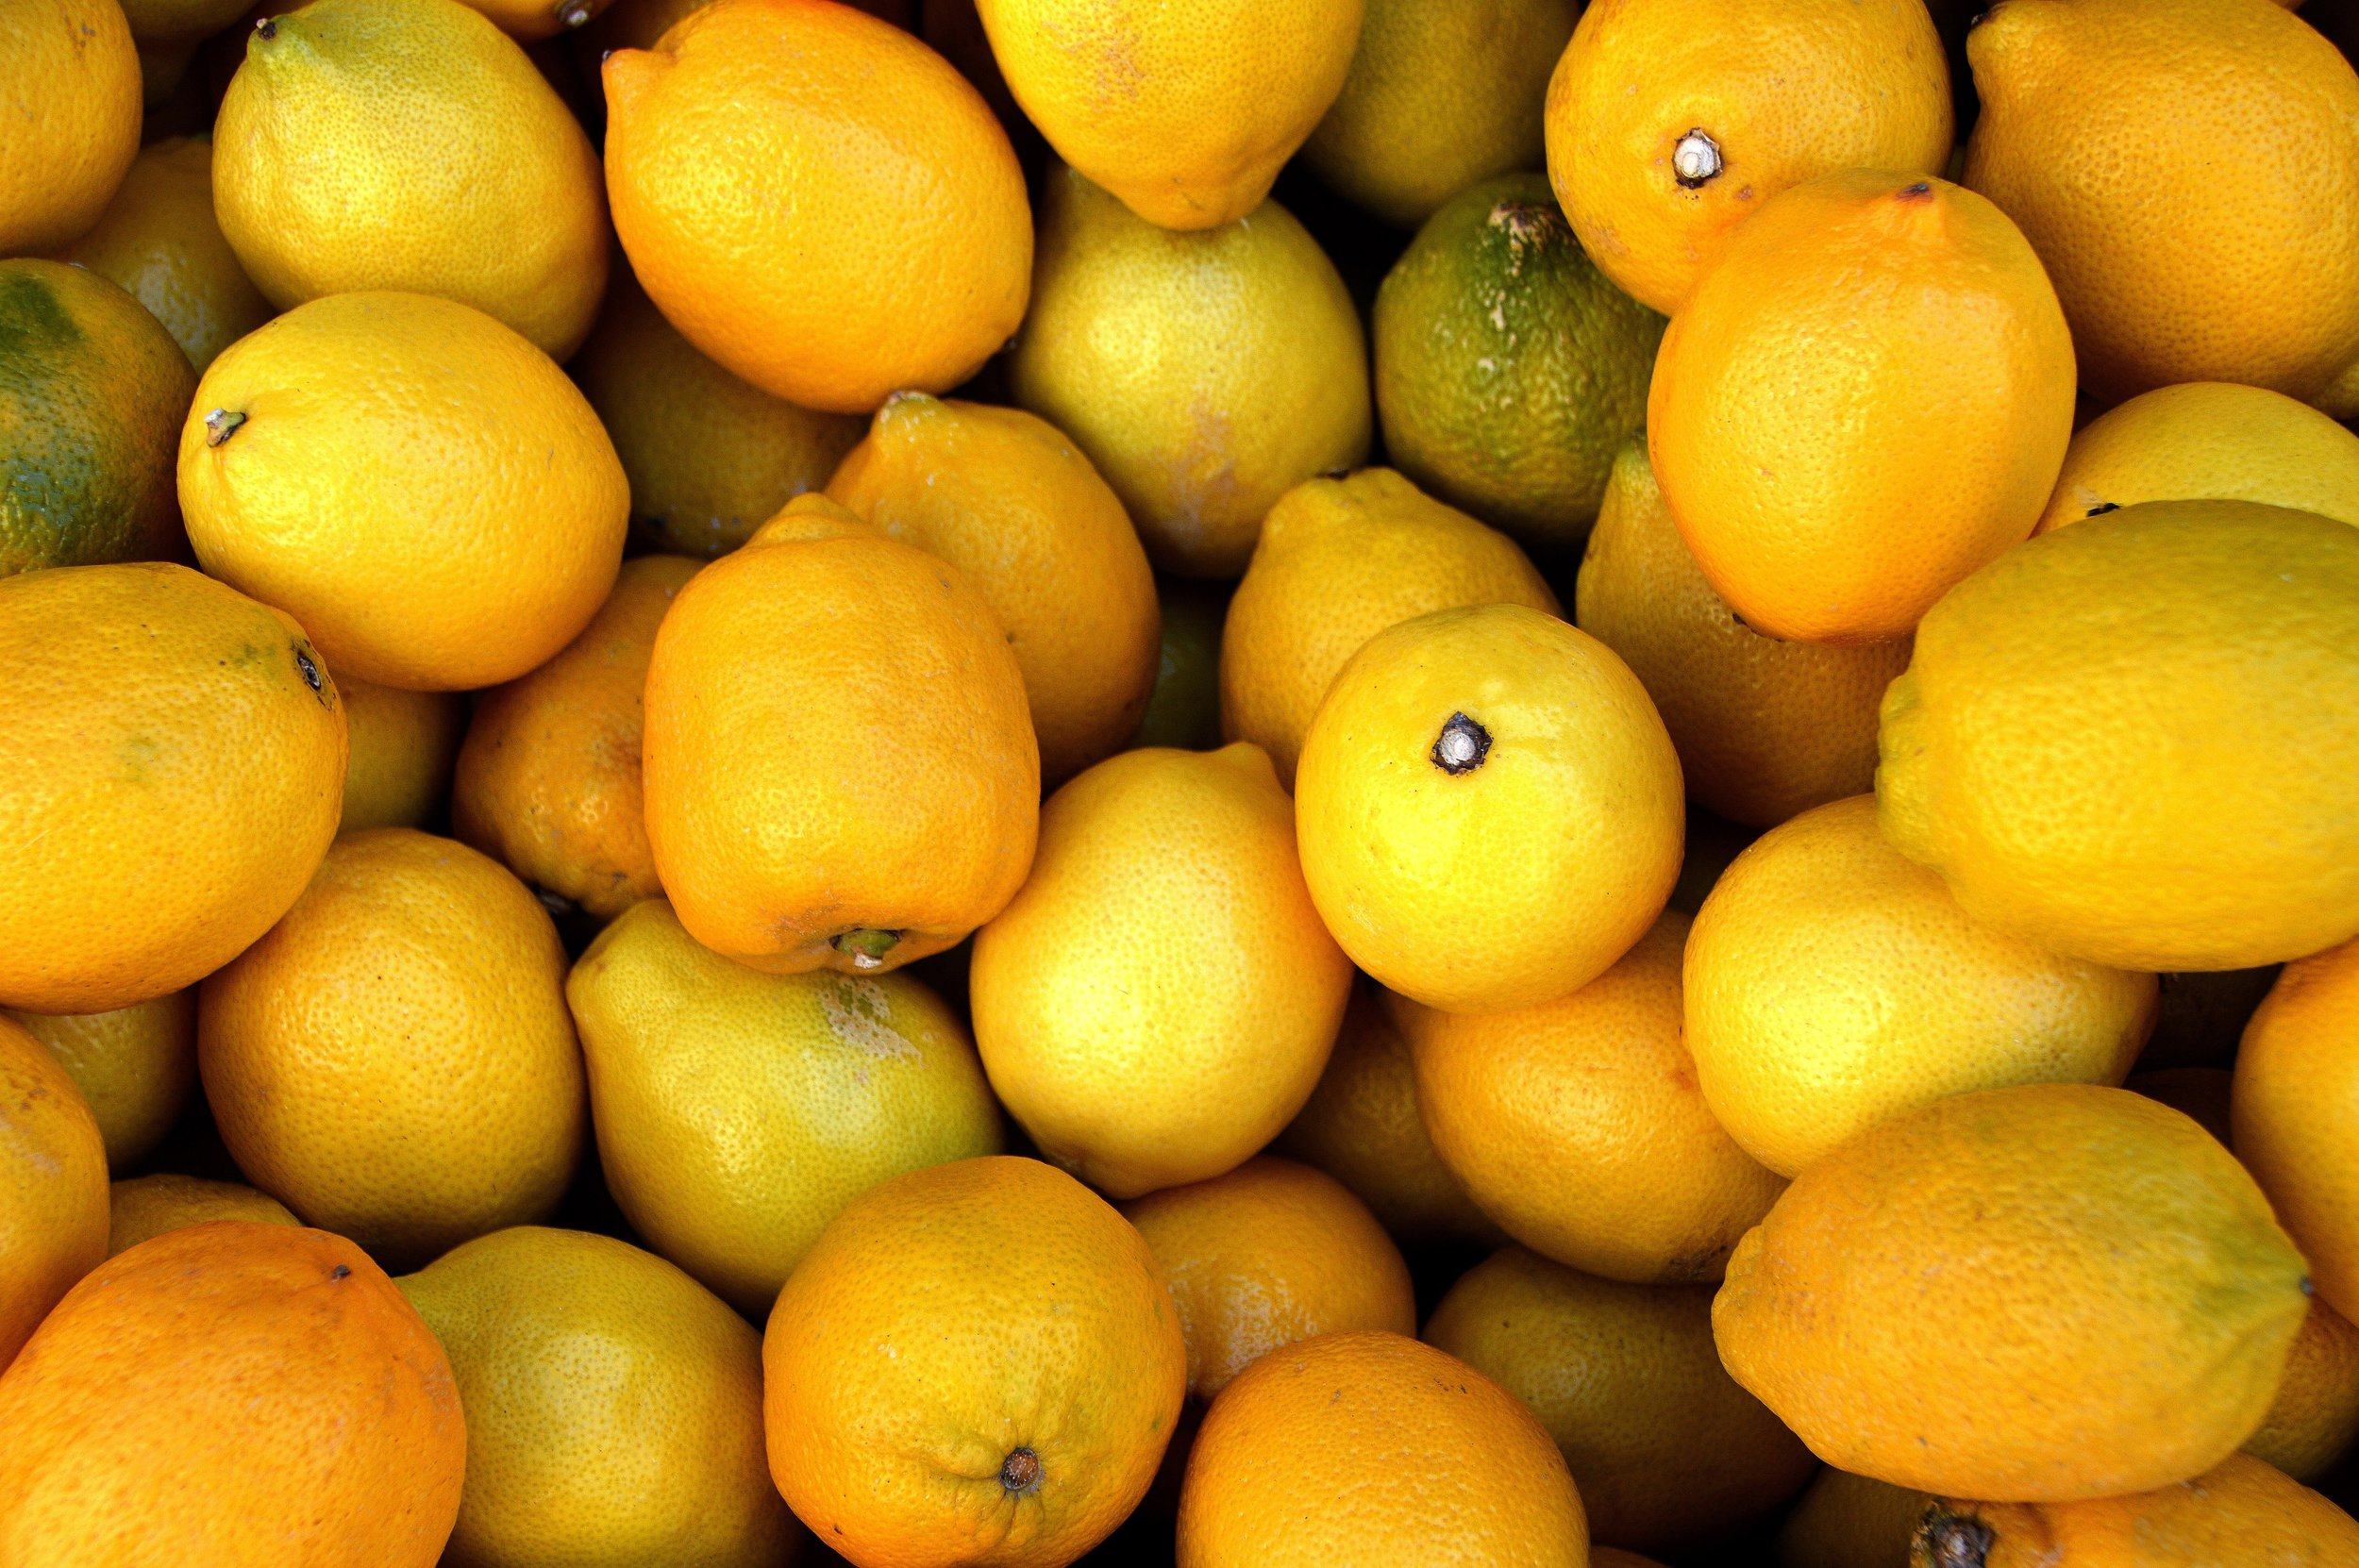 citrus-citrus-fruits-close-up-266346.jpg